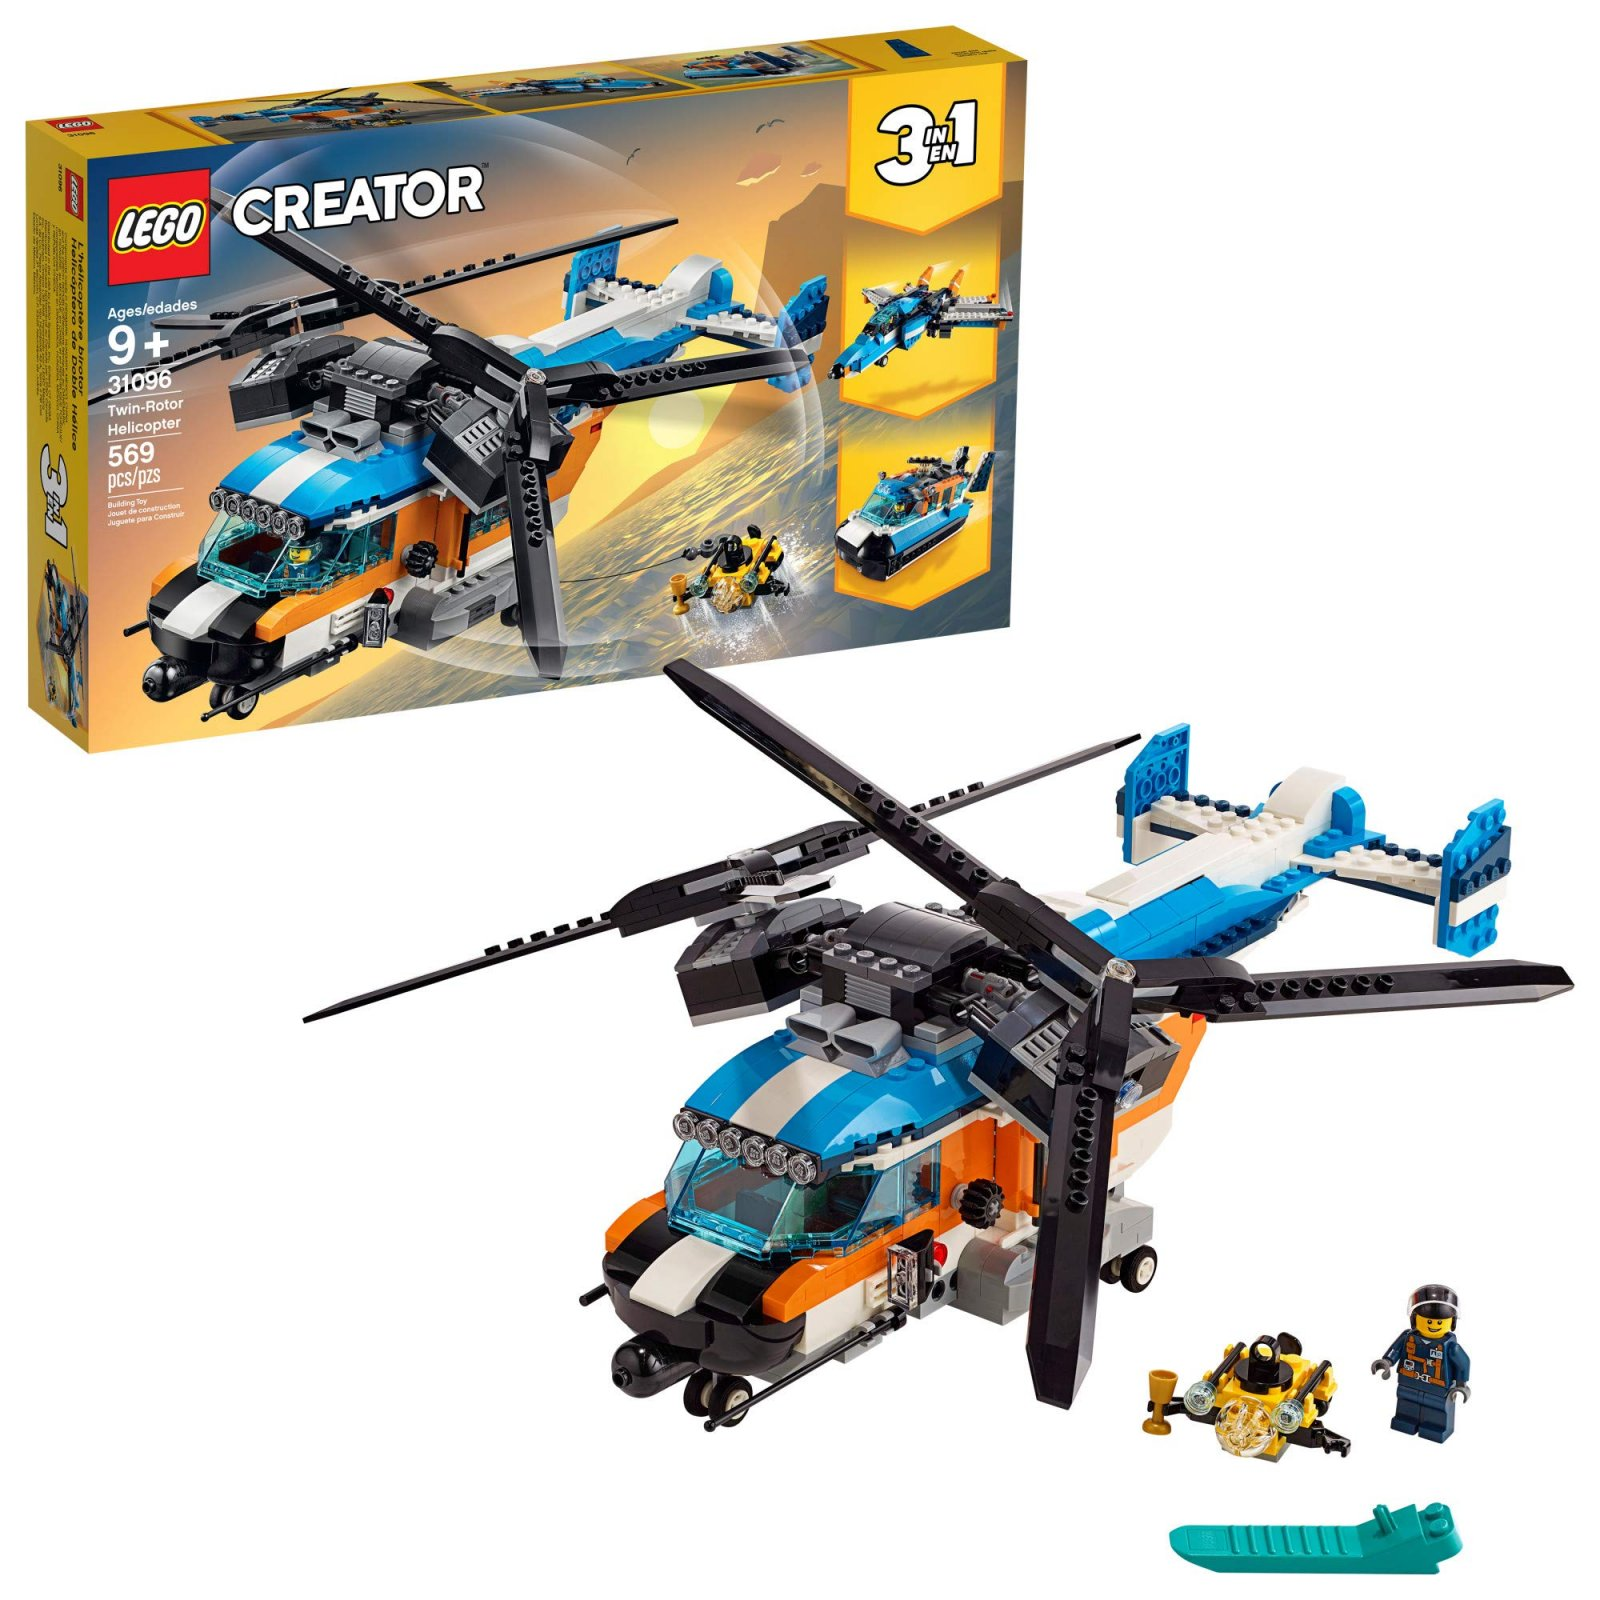 Lego Creator 3 in 1 Twin Rotor Helicopter (31096)